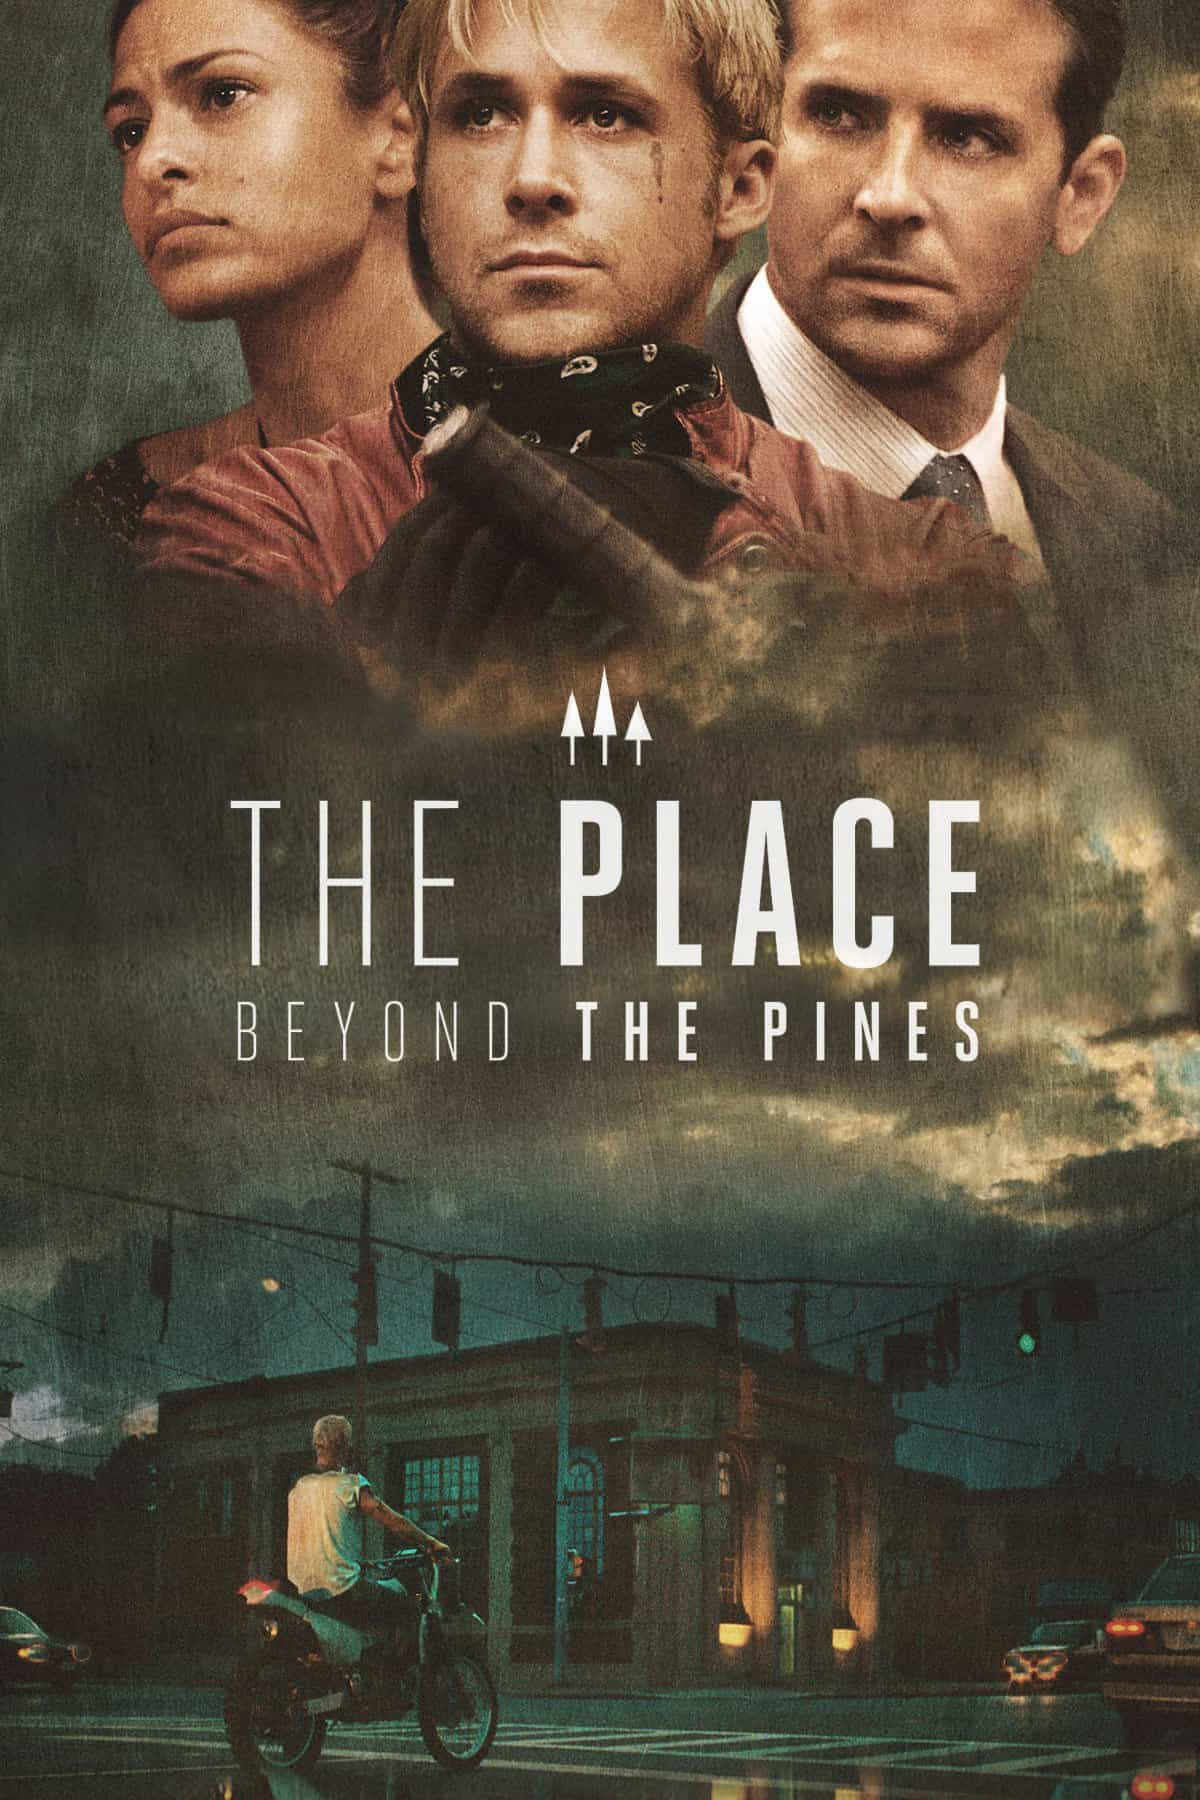 The Place Beyond the Pines, 2012